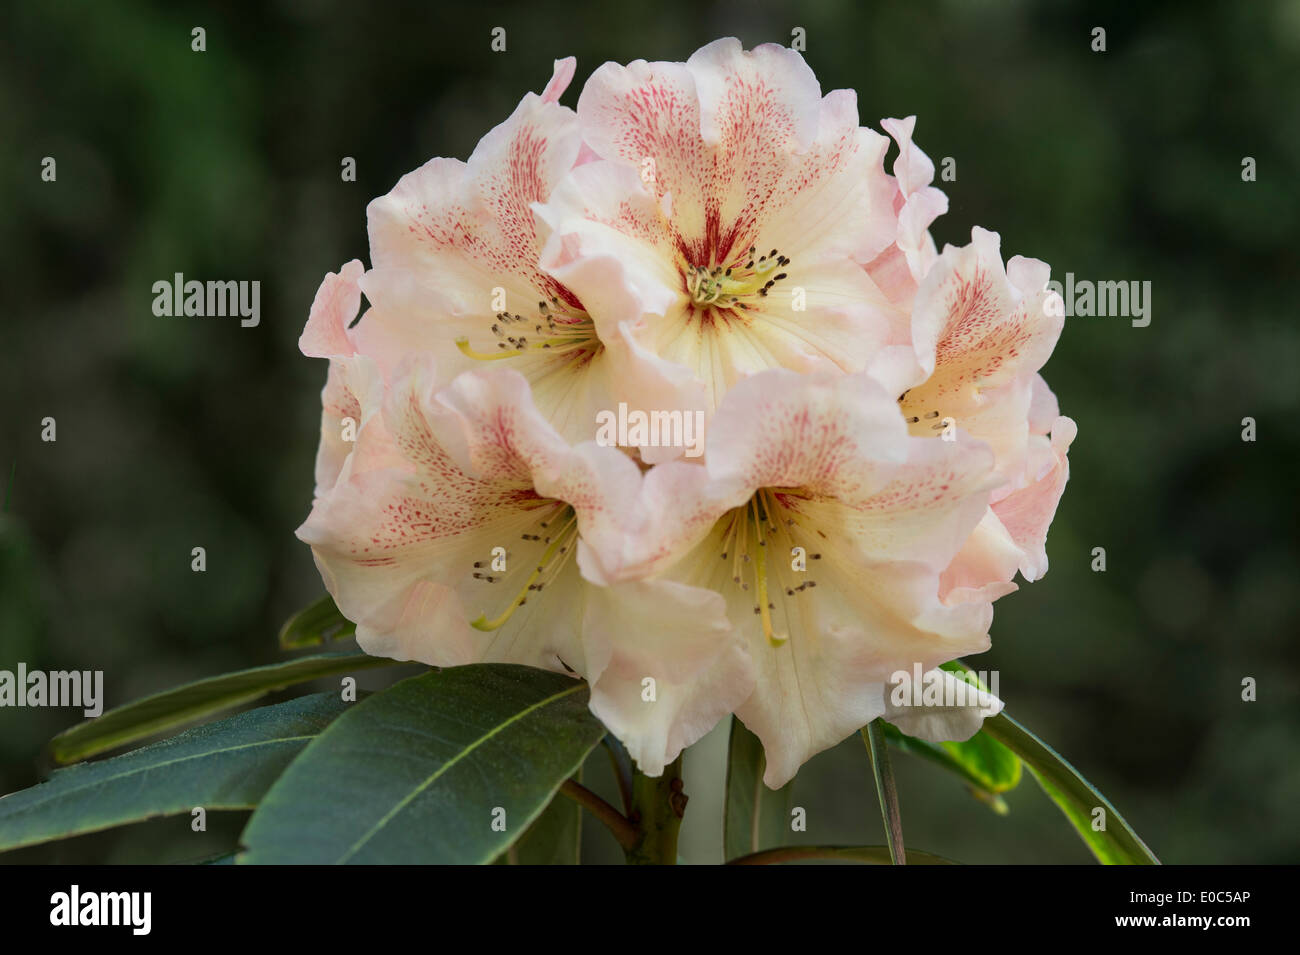 Rhododendron 'Wind River' flowers Himalayan Garden and Sculpture Park North Yorkshire England UK Europe - Stock Image